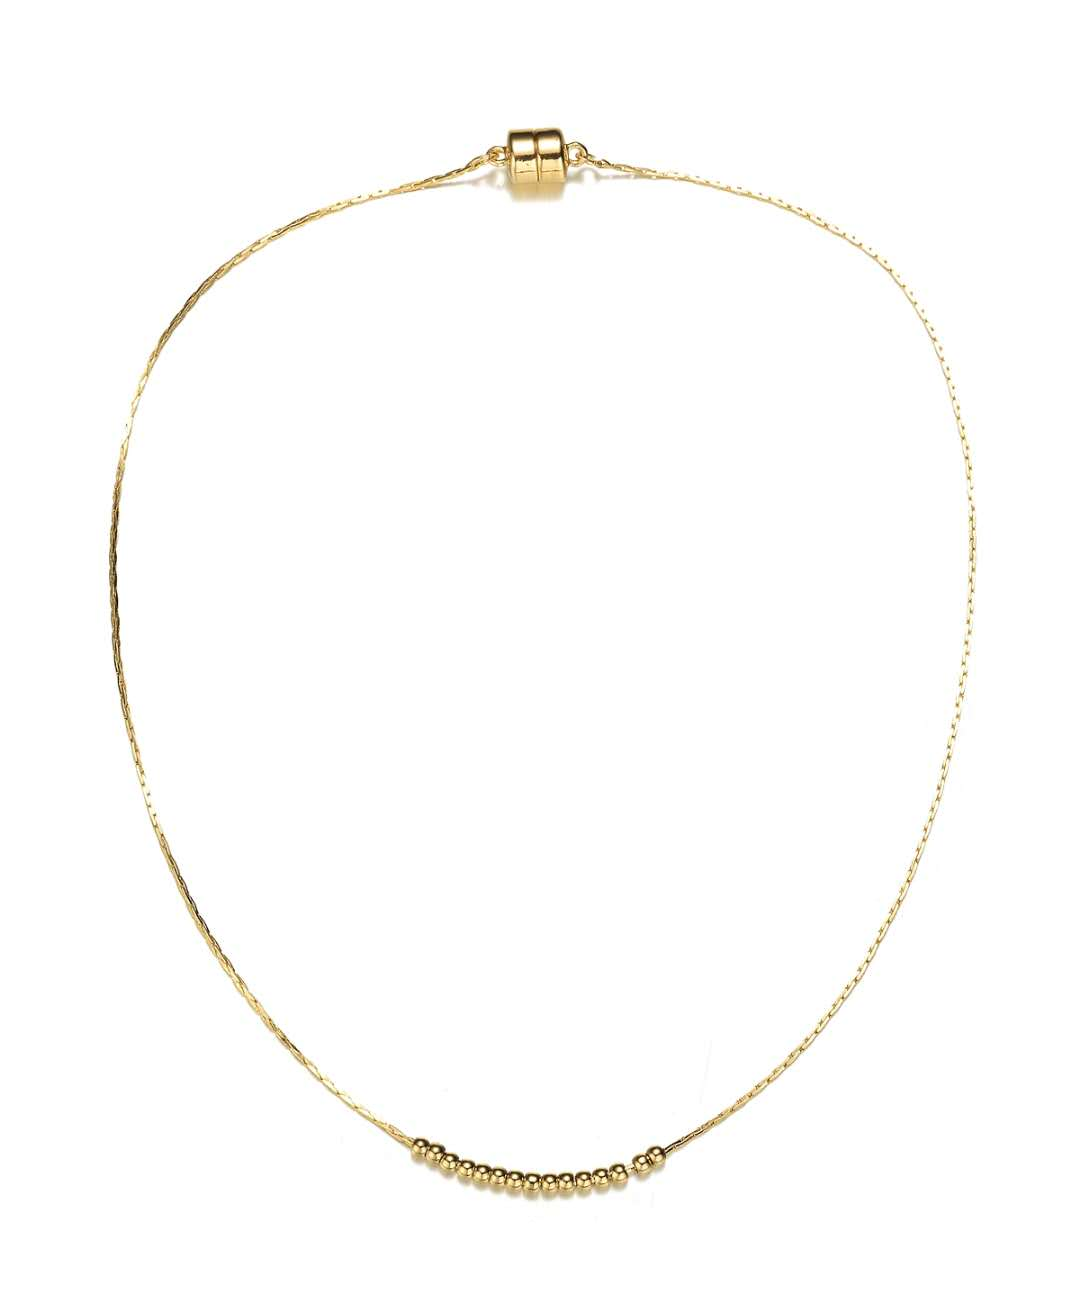 Carol Dainty Necklace: Silver or Gold-Jewels to Jet-Magnetic Clasp Jewelry